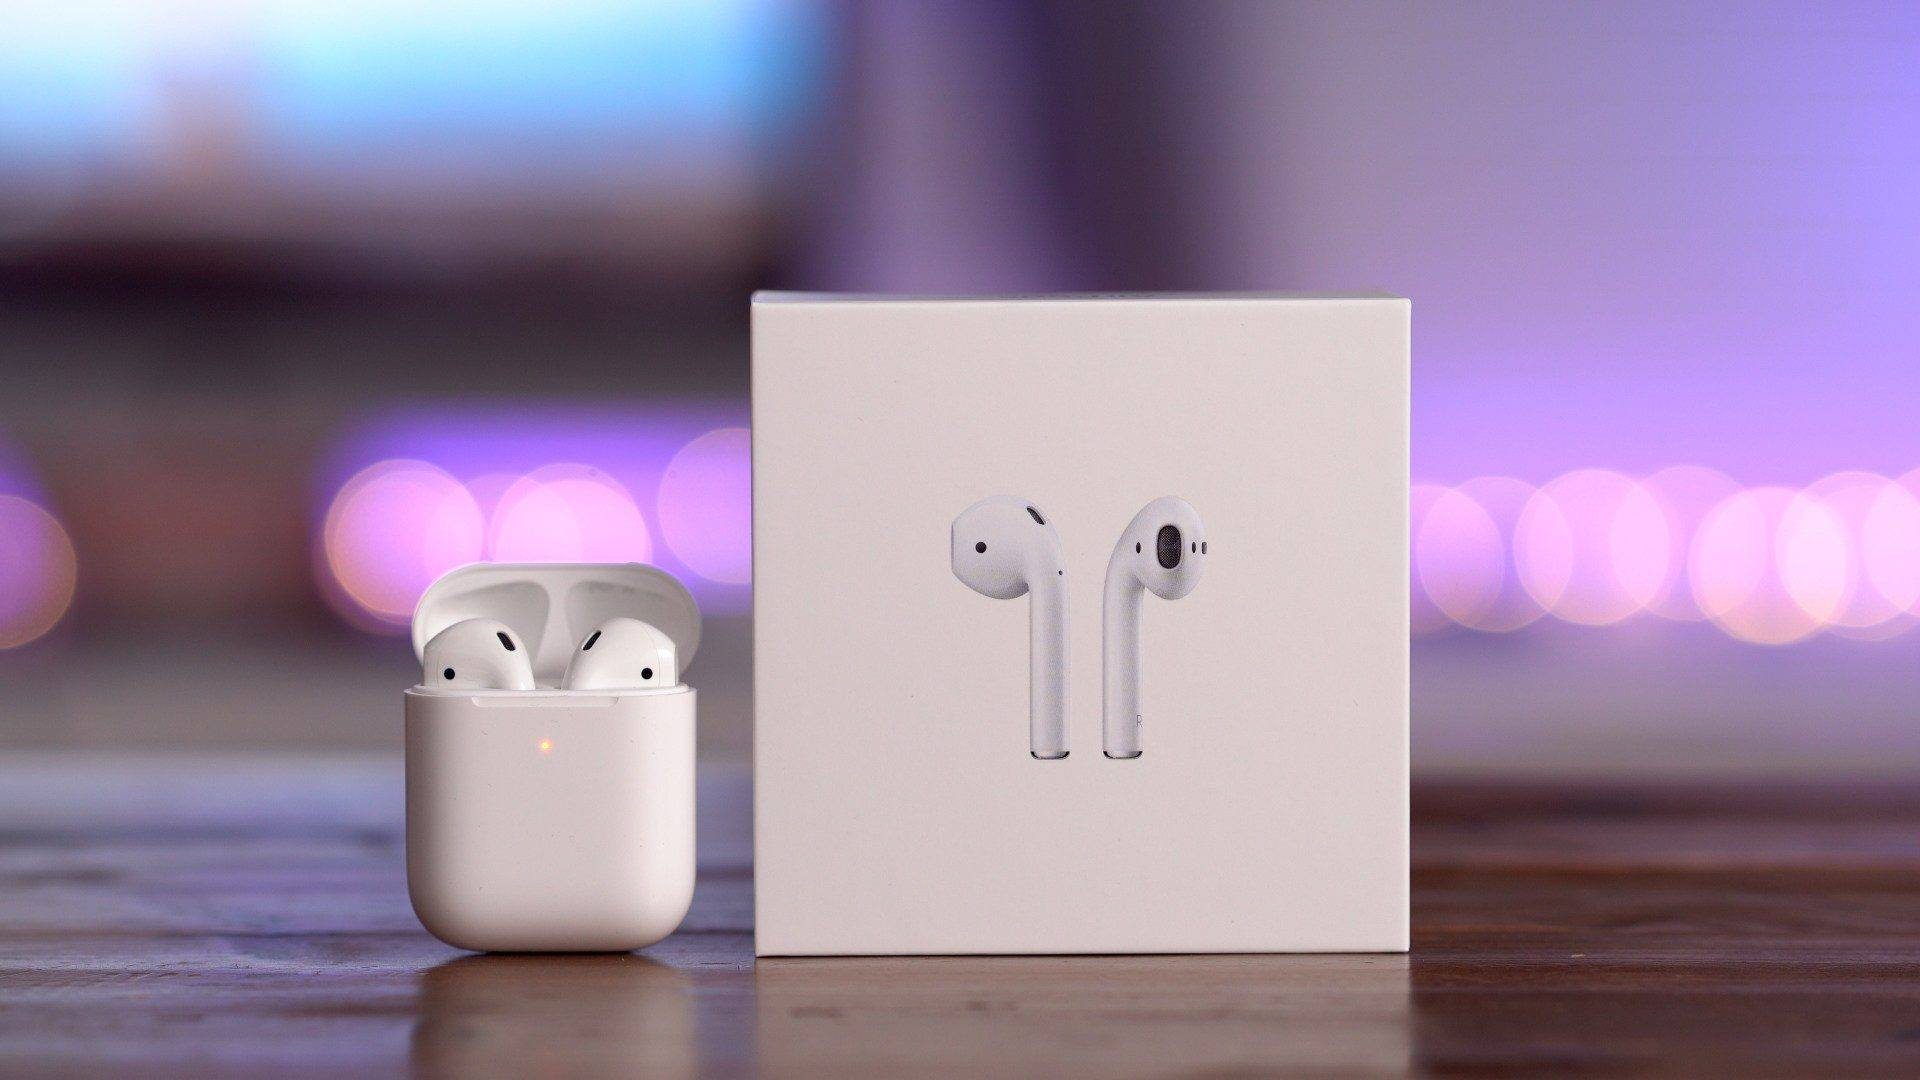 AirPods-2-Review-9to5Mac